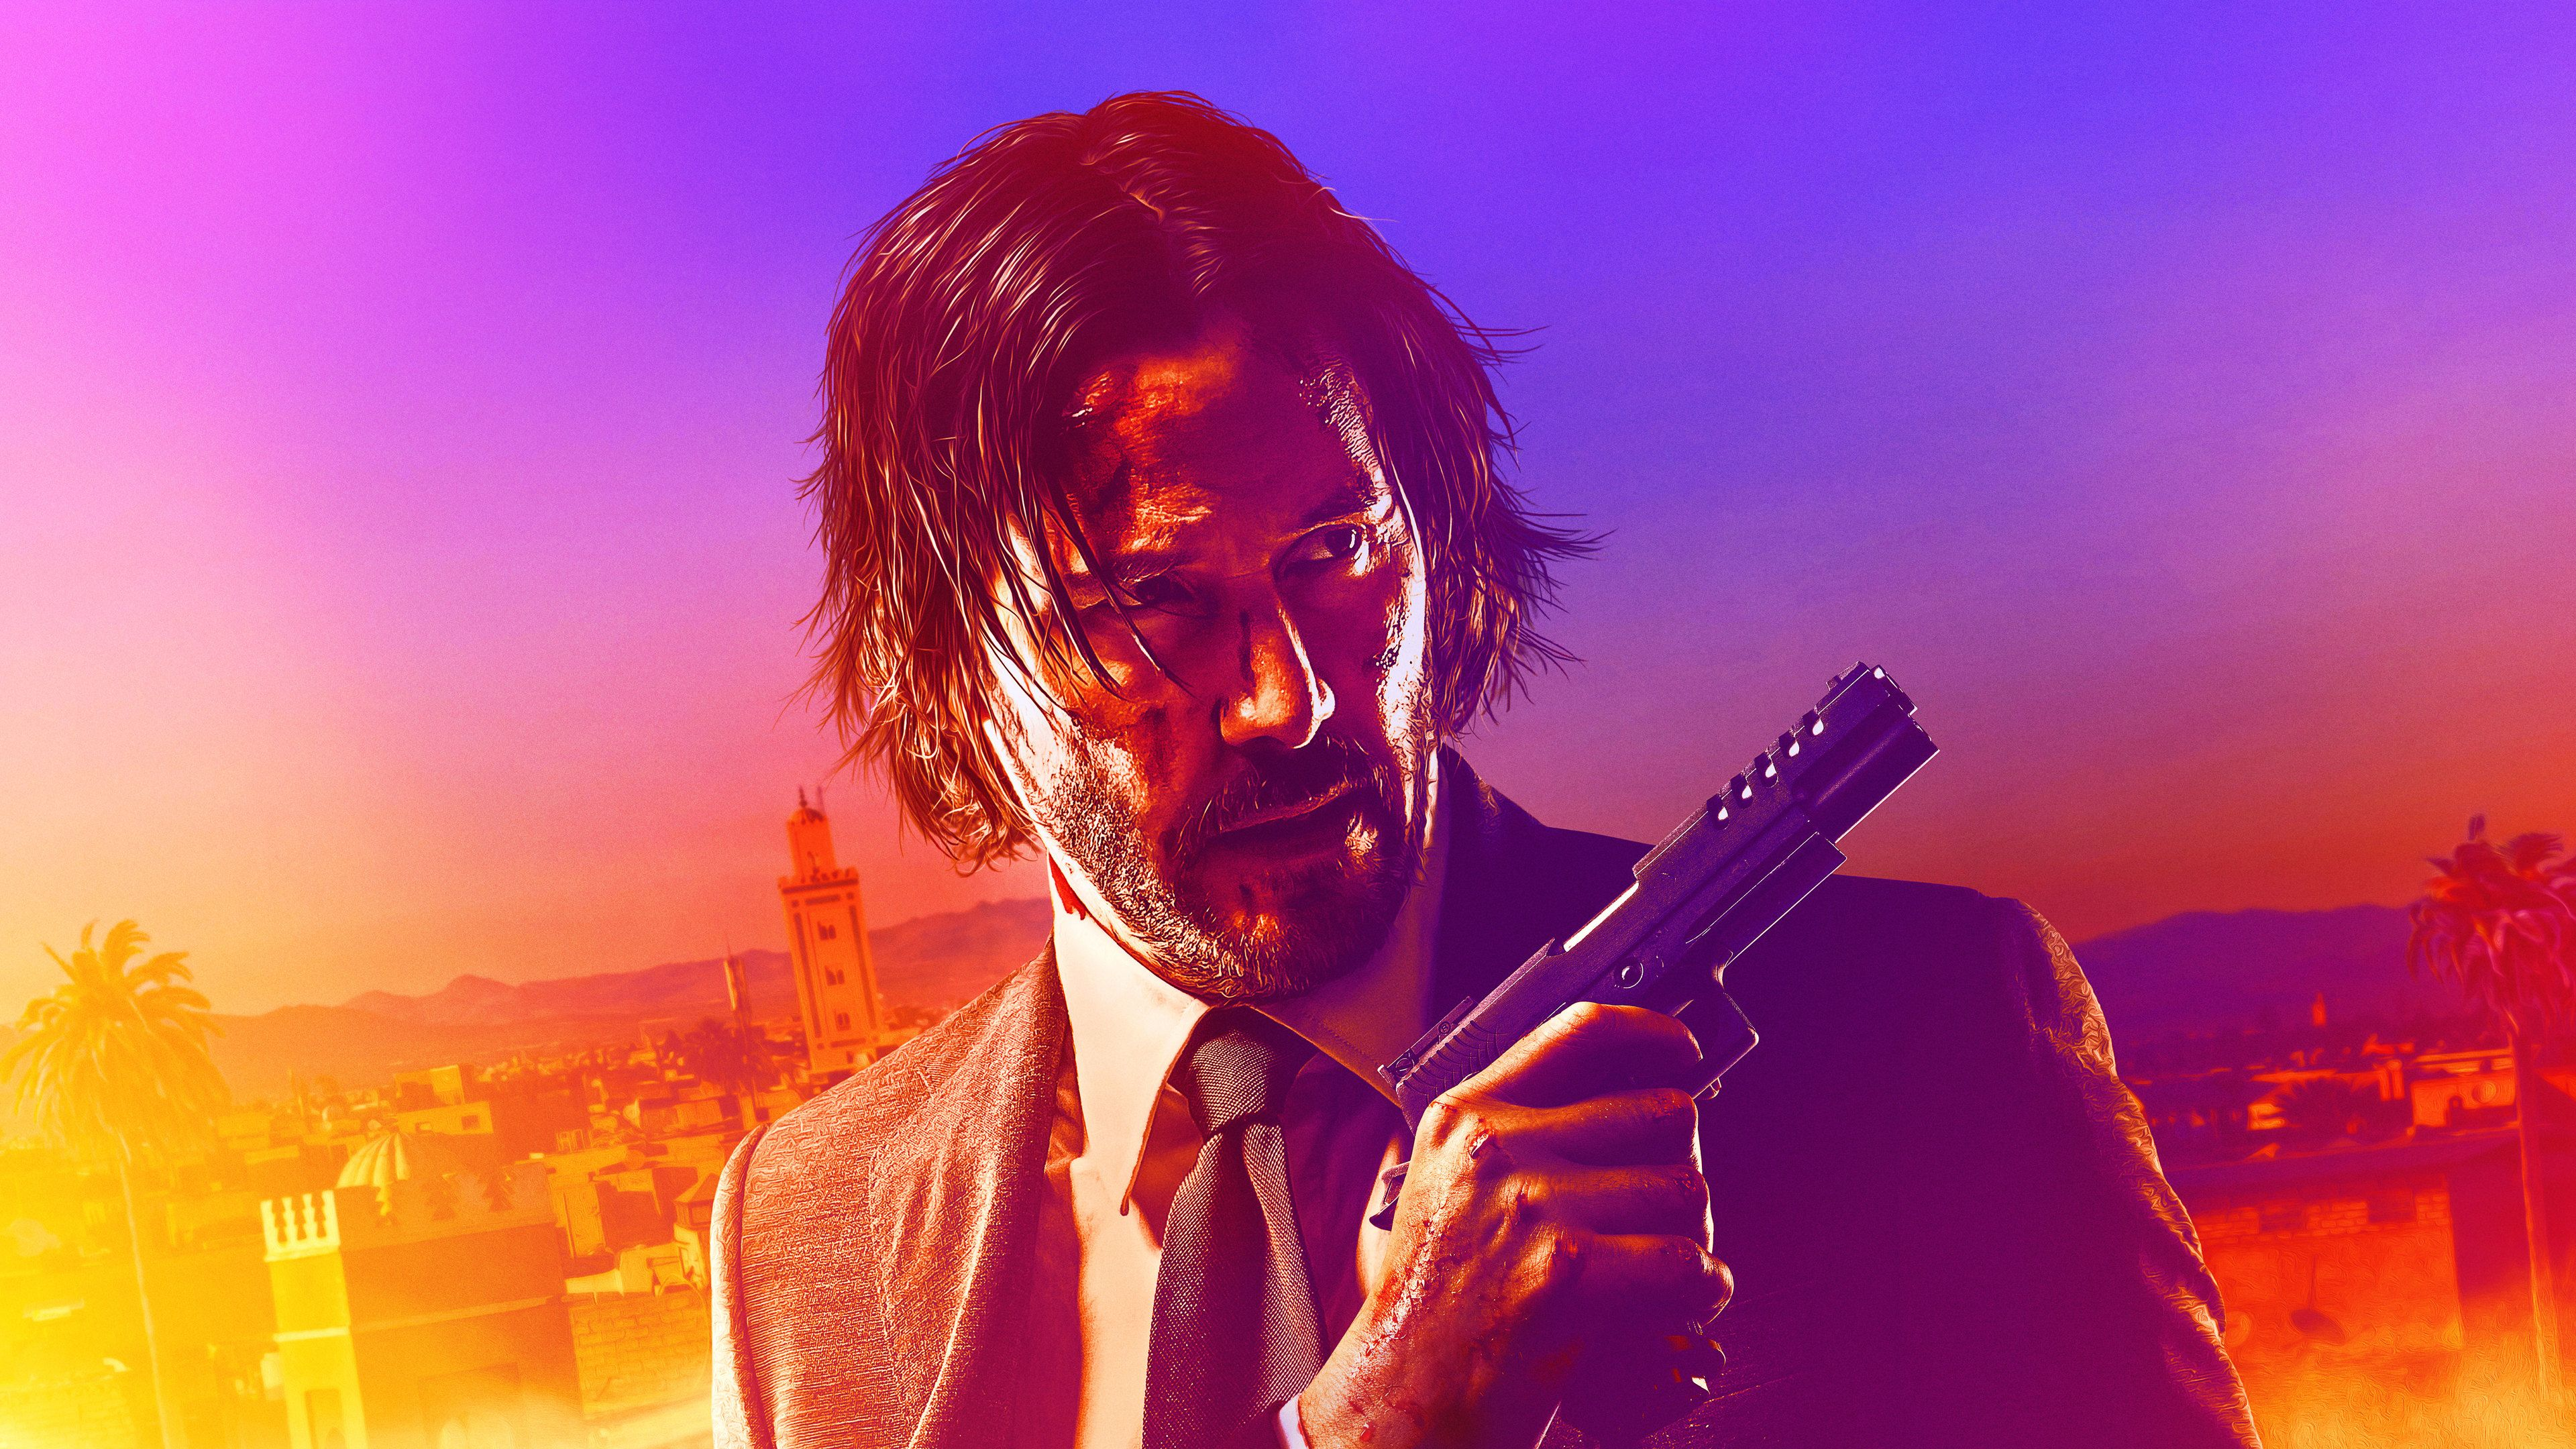 John Wick Chapter 3 Parabellum 2019 4k Movies Wallpapers Keanu Reeves Wallpapers John Wick Chapter 3 Wallpapers John Keanu Reeves Movie Wallpapers John Wick